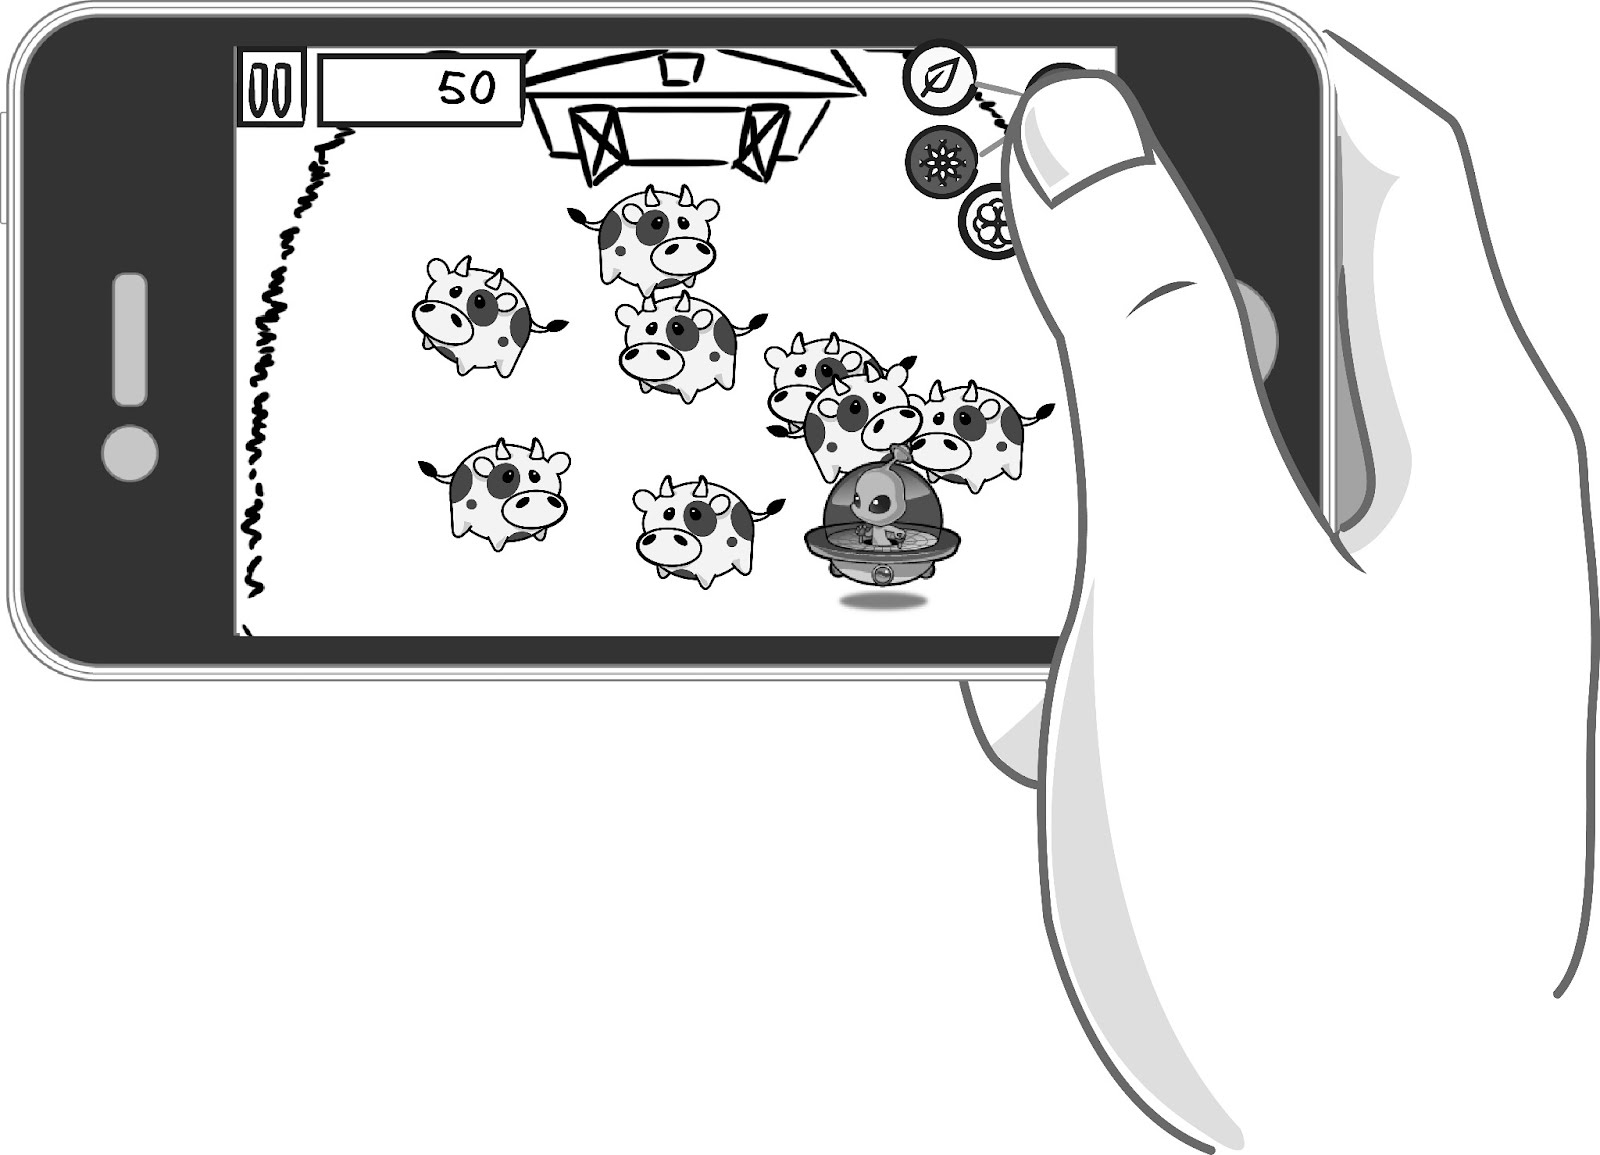 Adding a button to trigger powerups. Too many controls at once!!